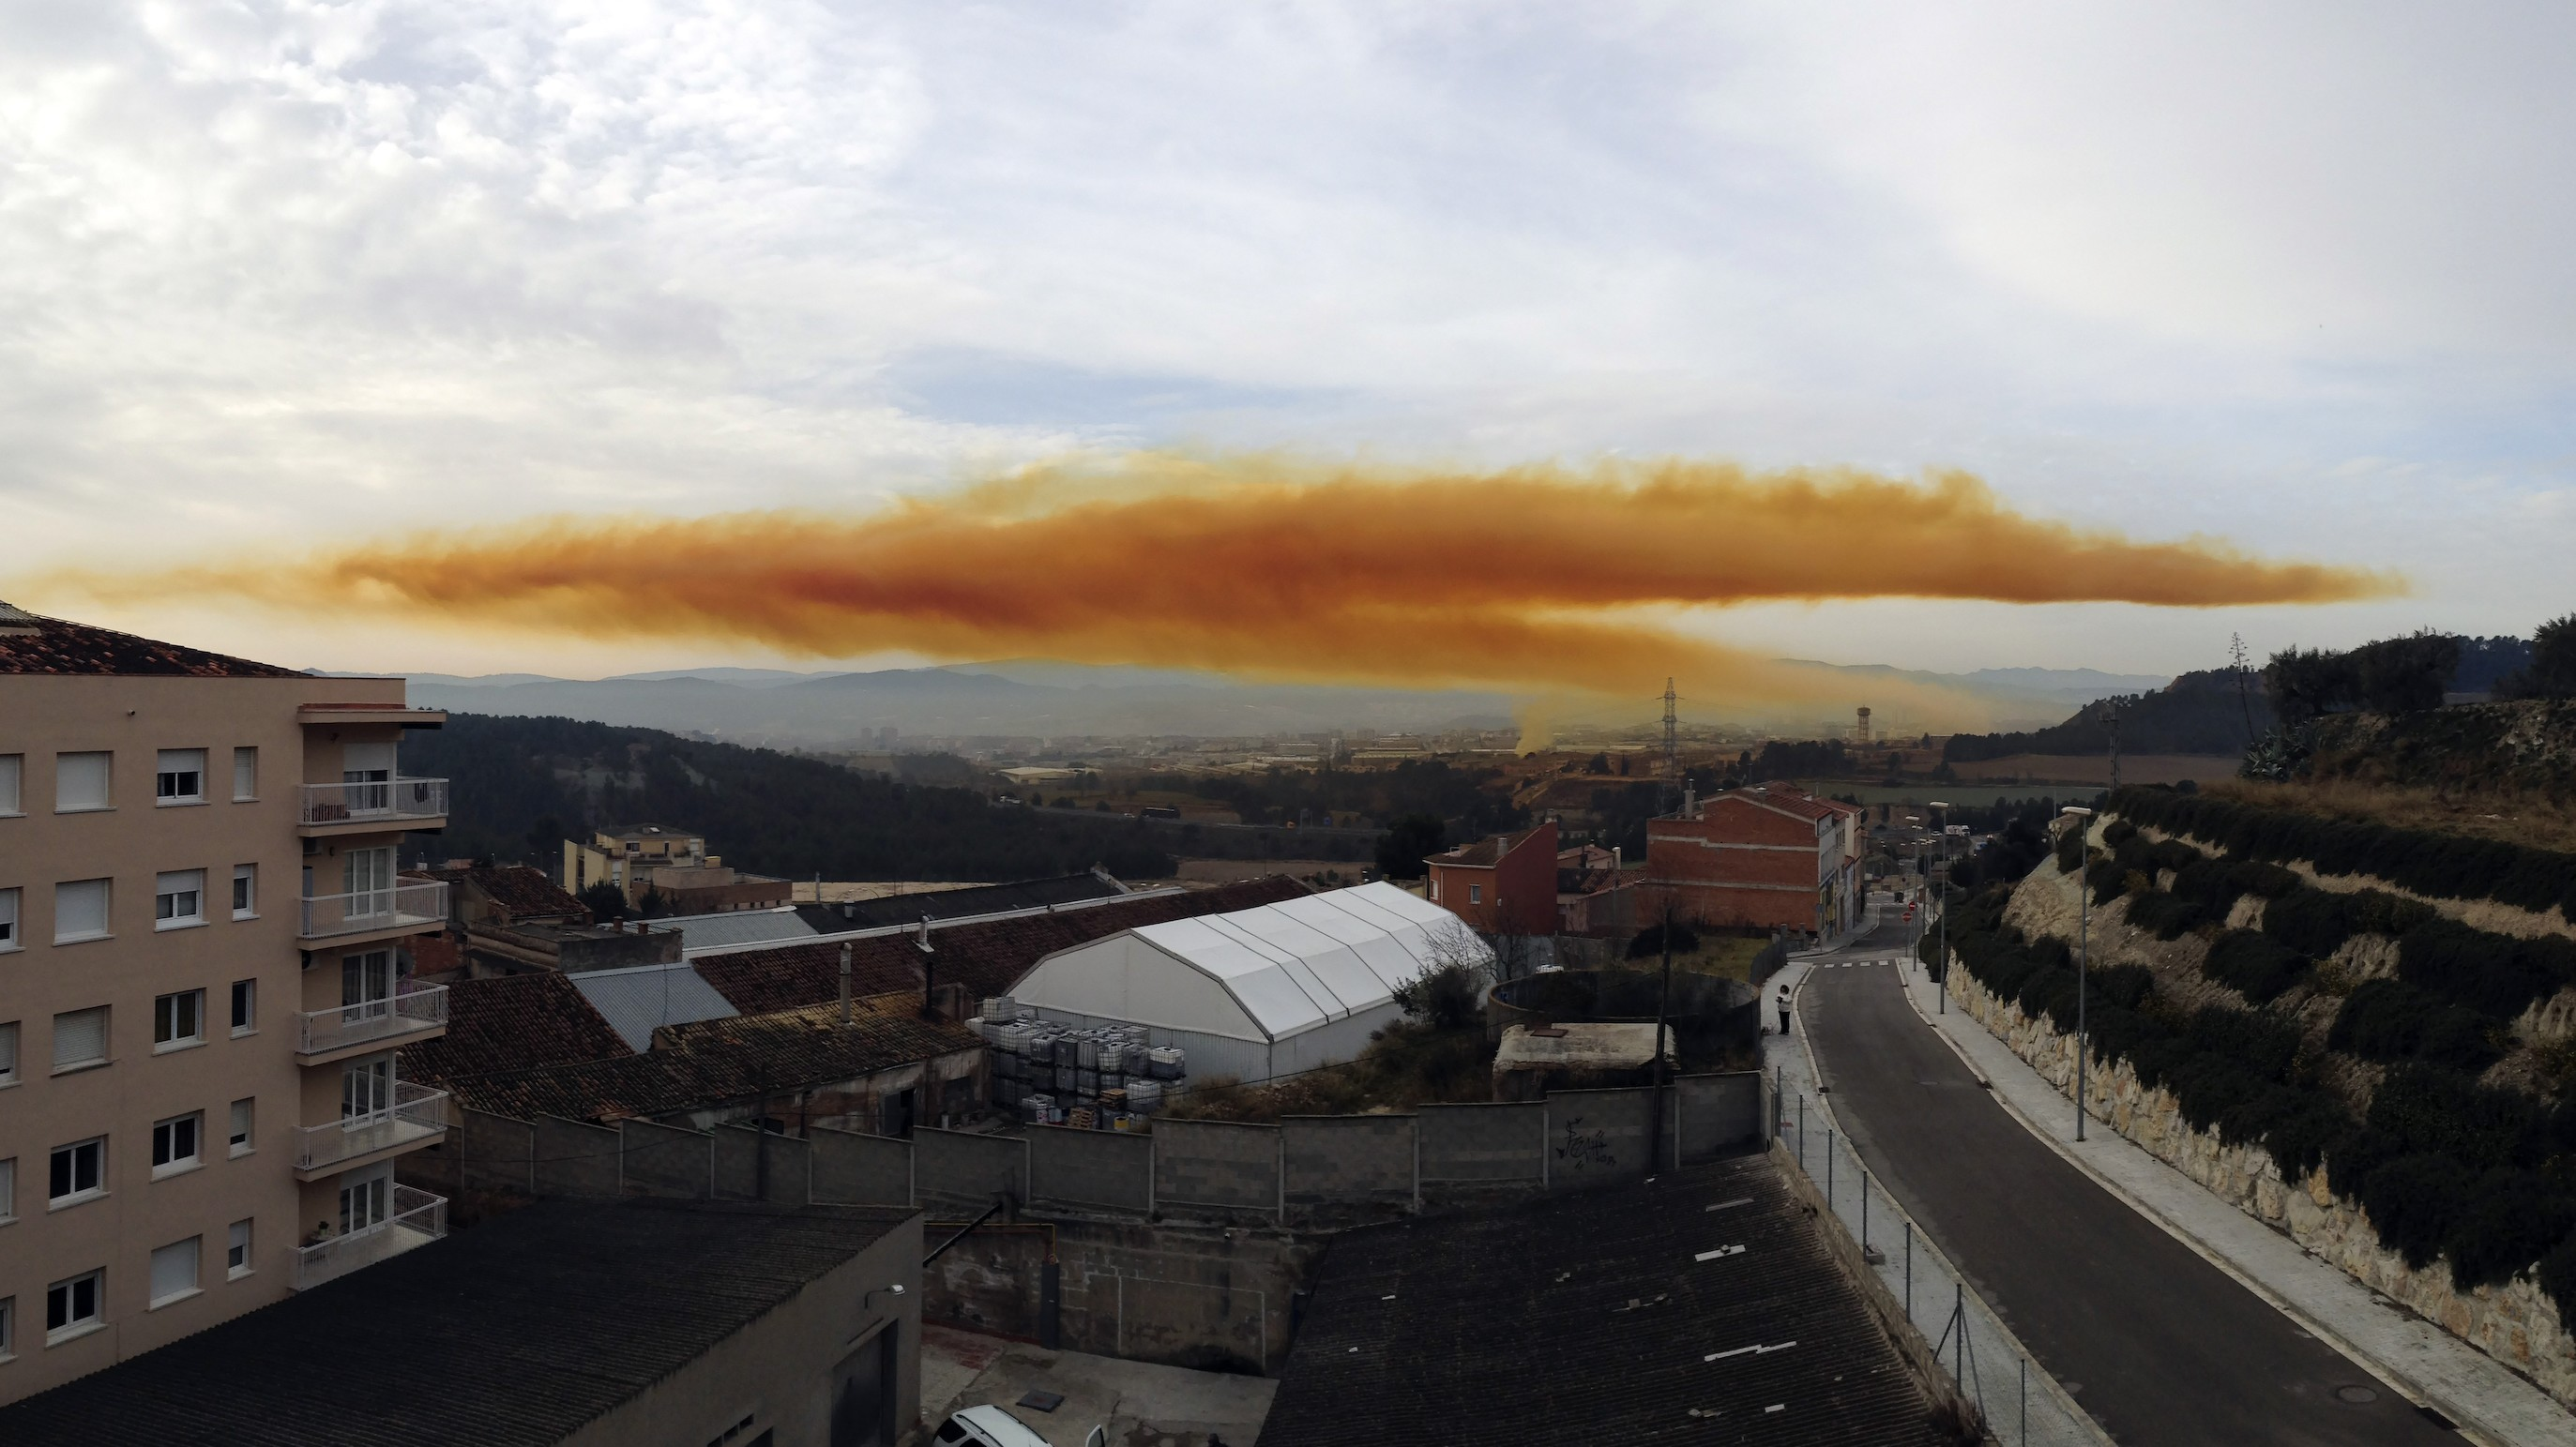 Video Shows Chemical Explosion in Spain Unleashing Orange Cloud of Nitric Acid